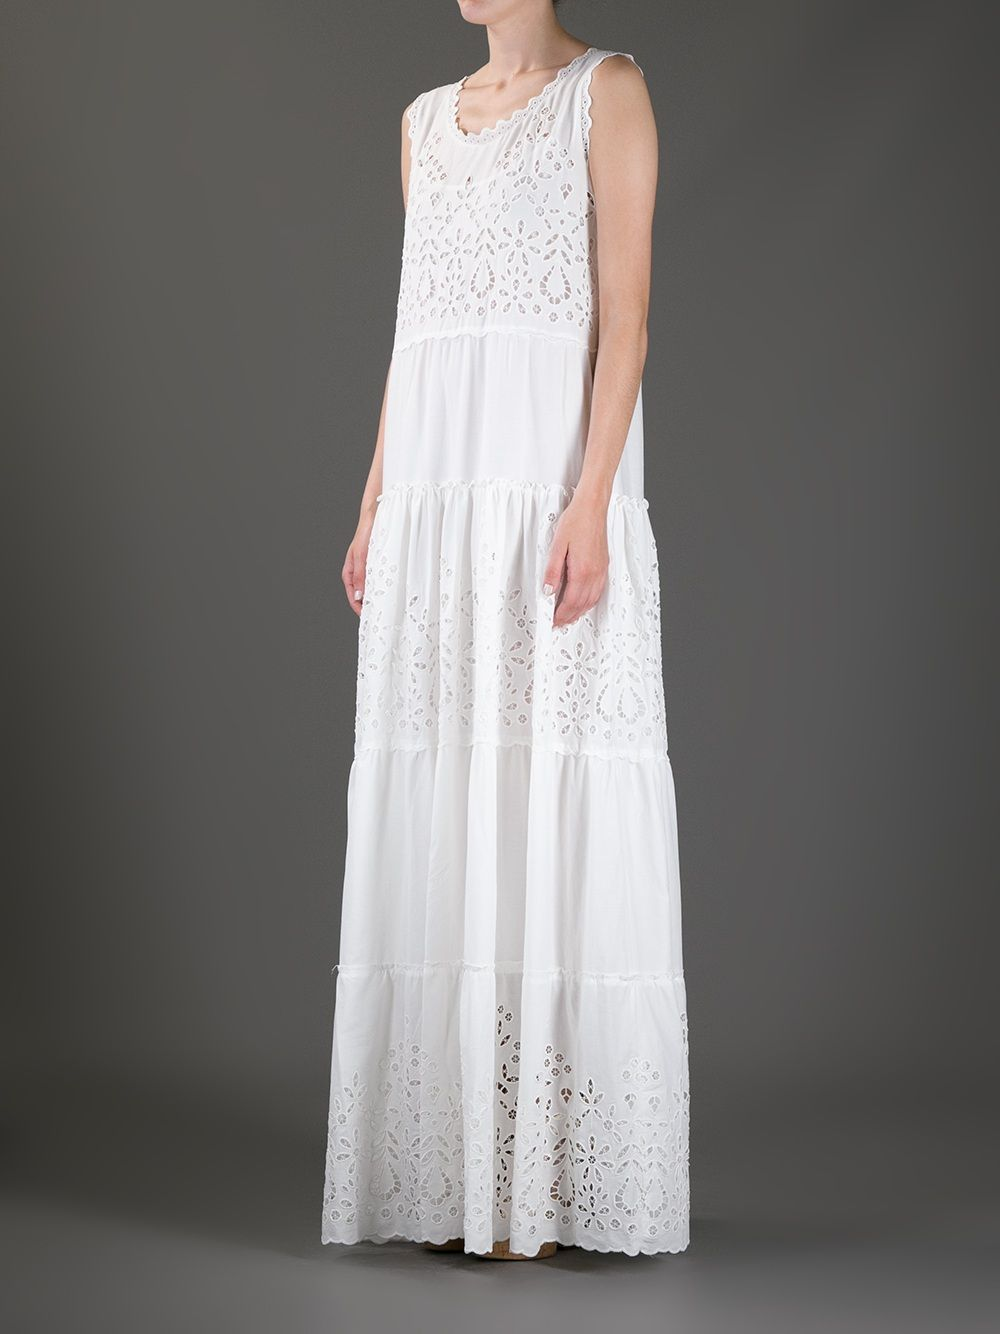 3a96835c195c Women's White Eyelet Maxi Dress | What to Wear 1? Tops/Tunics ...